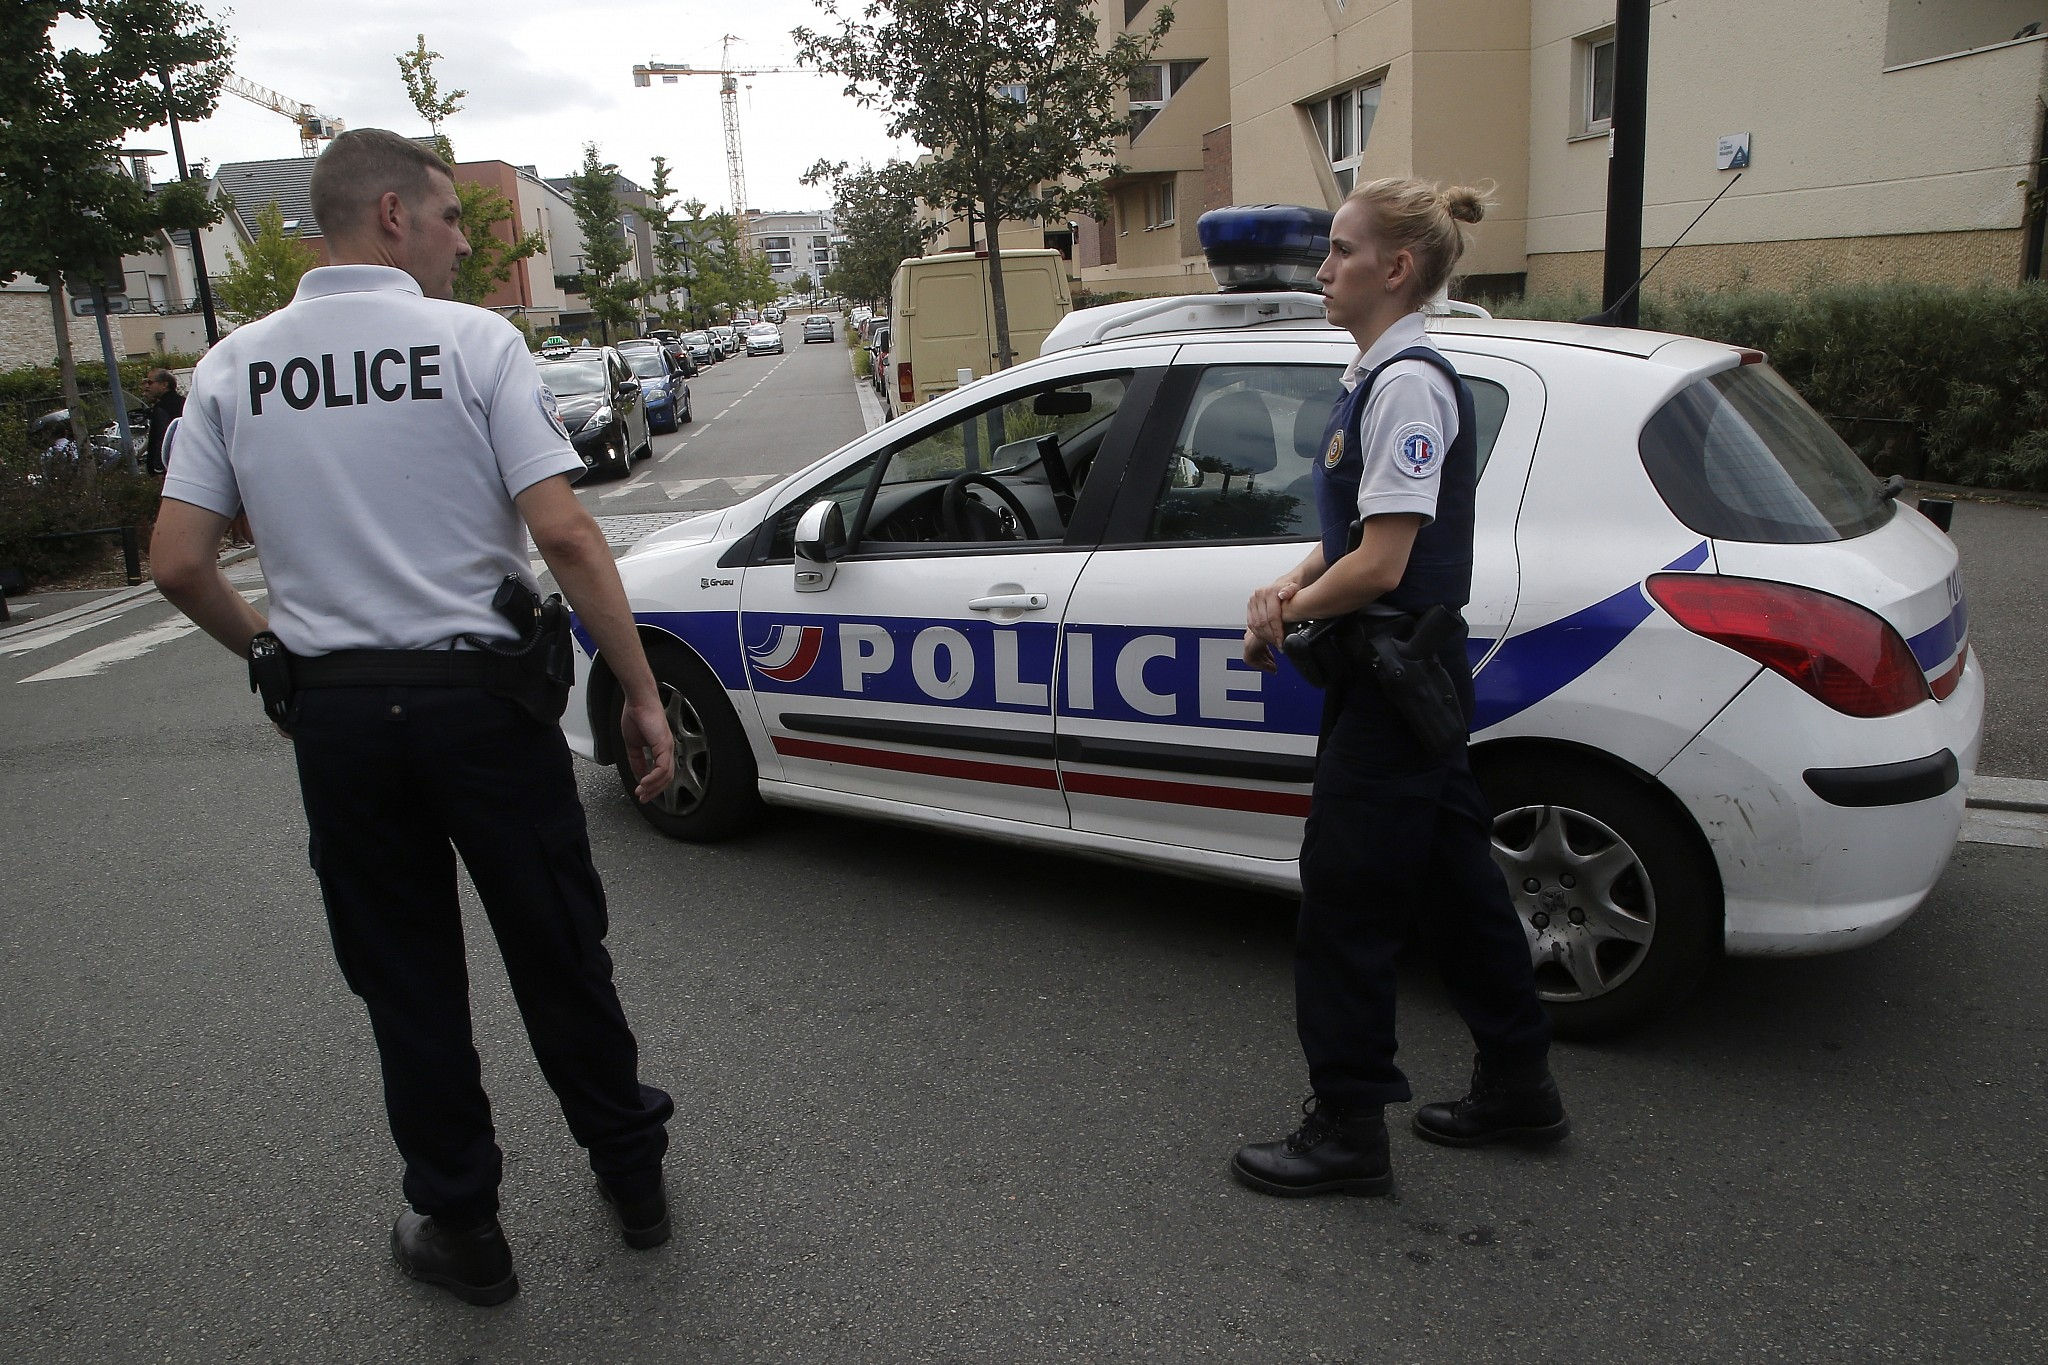 Three dead after knife attack in Paris suburb